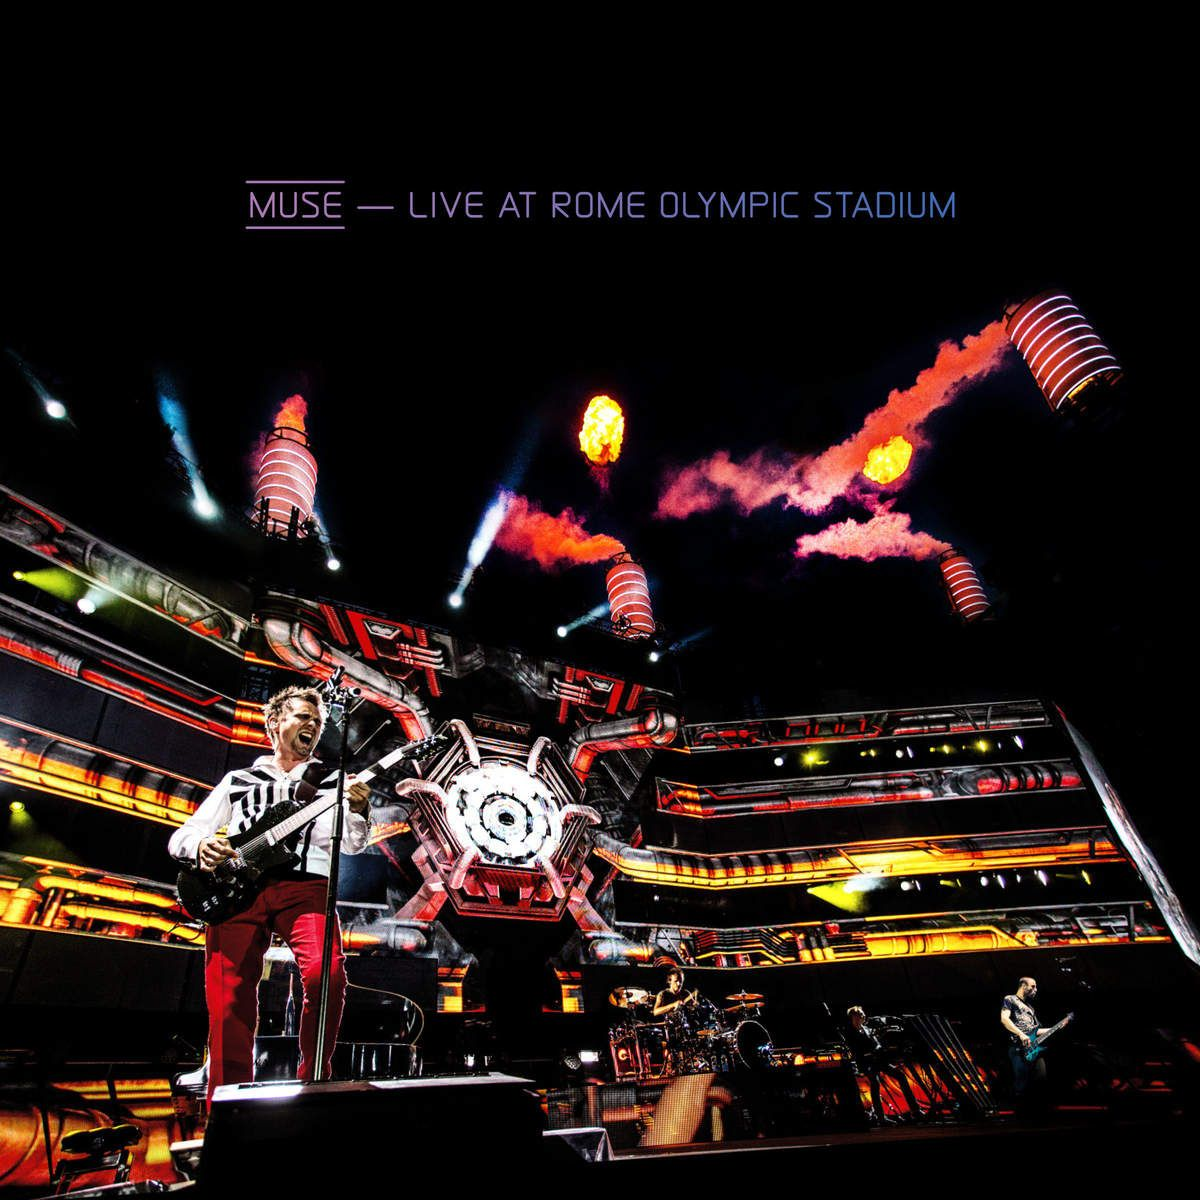 Muse - Live At Rome Olympia Stadium album cover